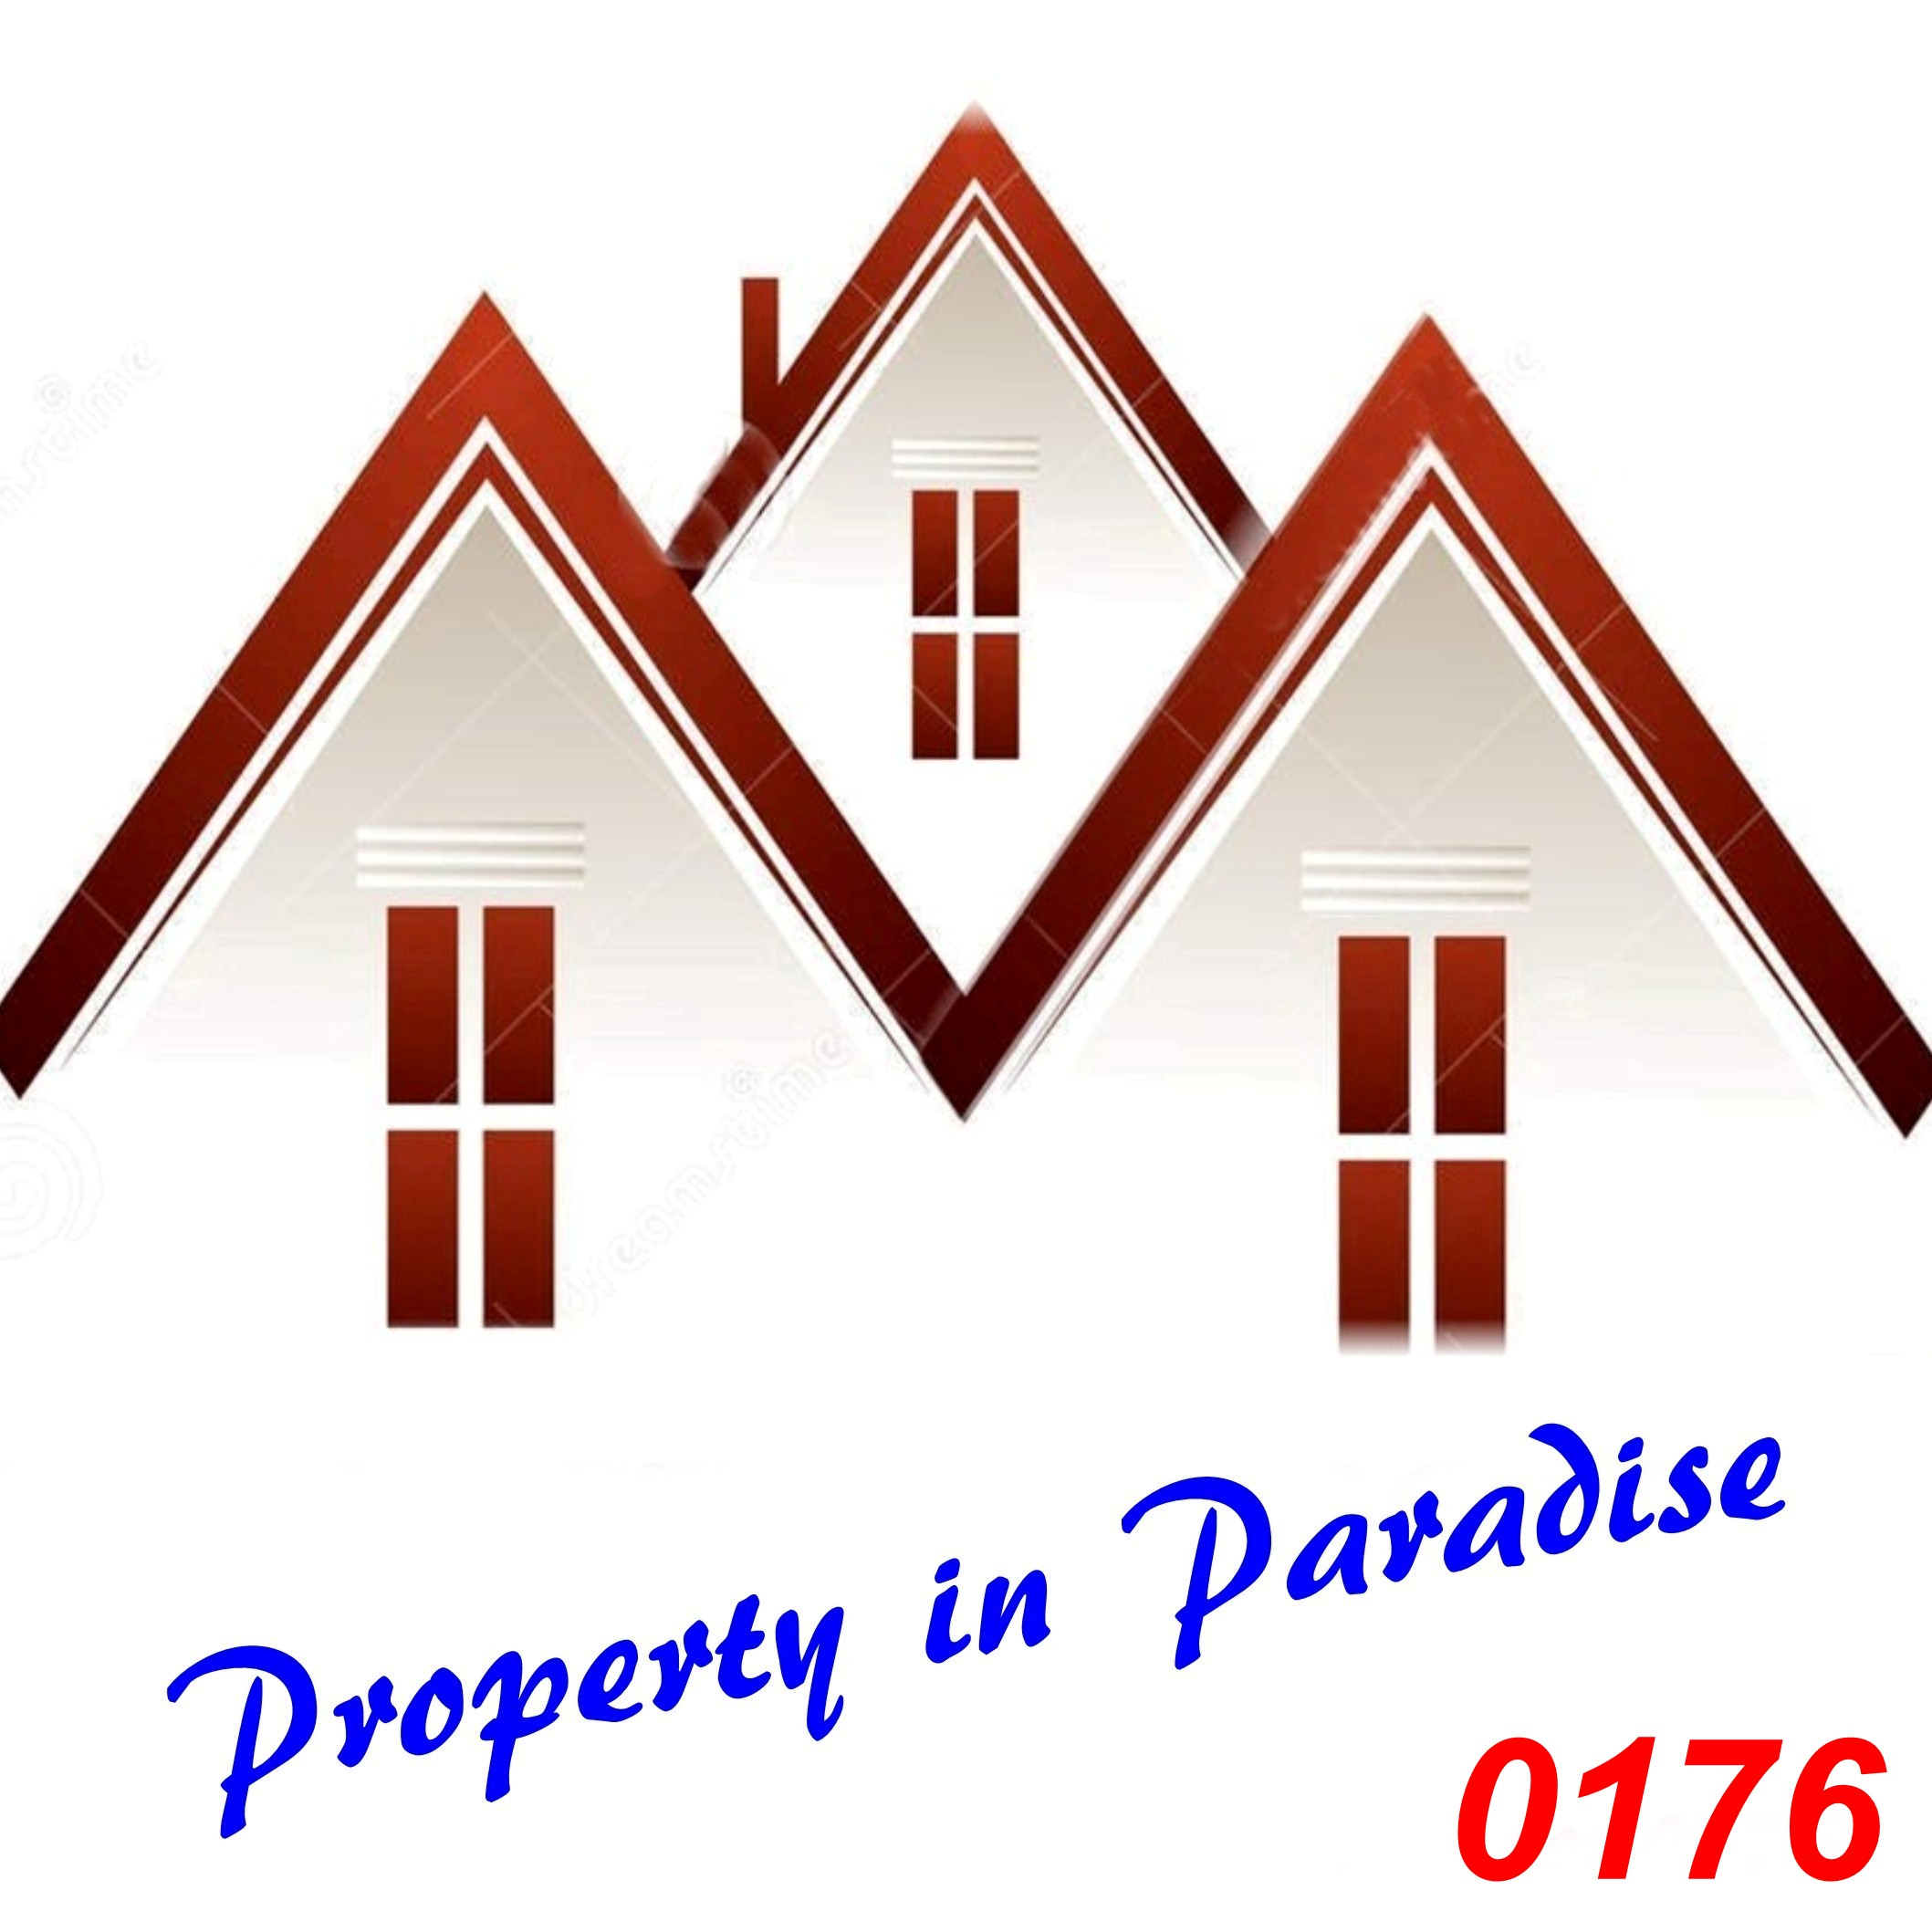 Nadi Property Managers